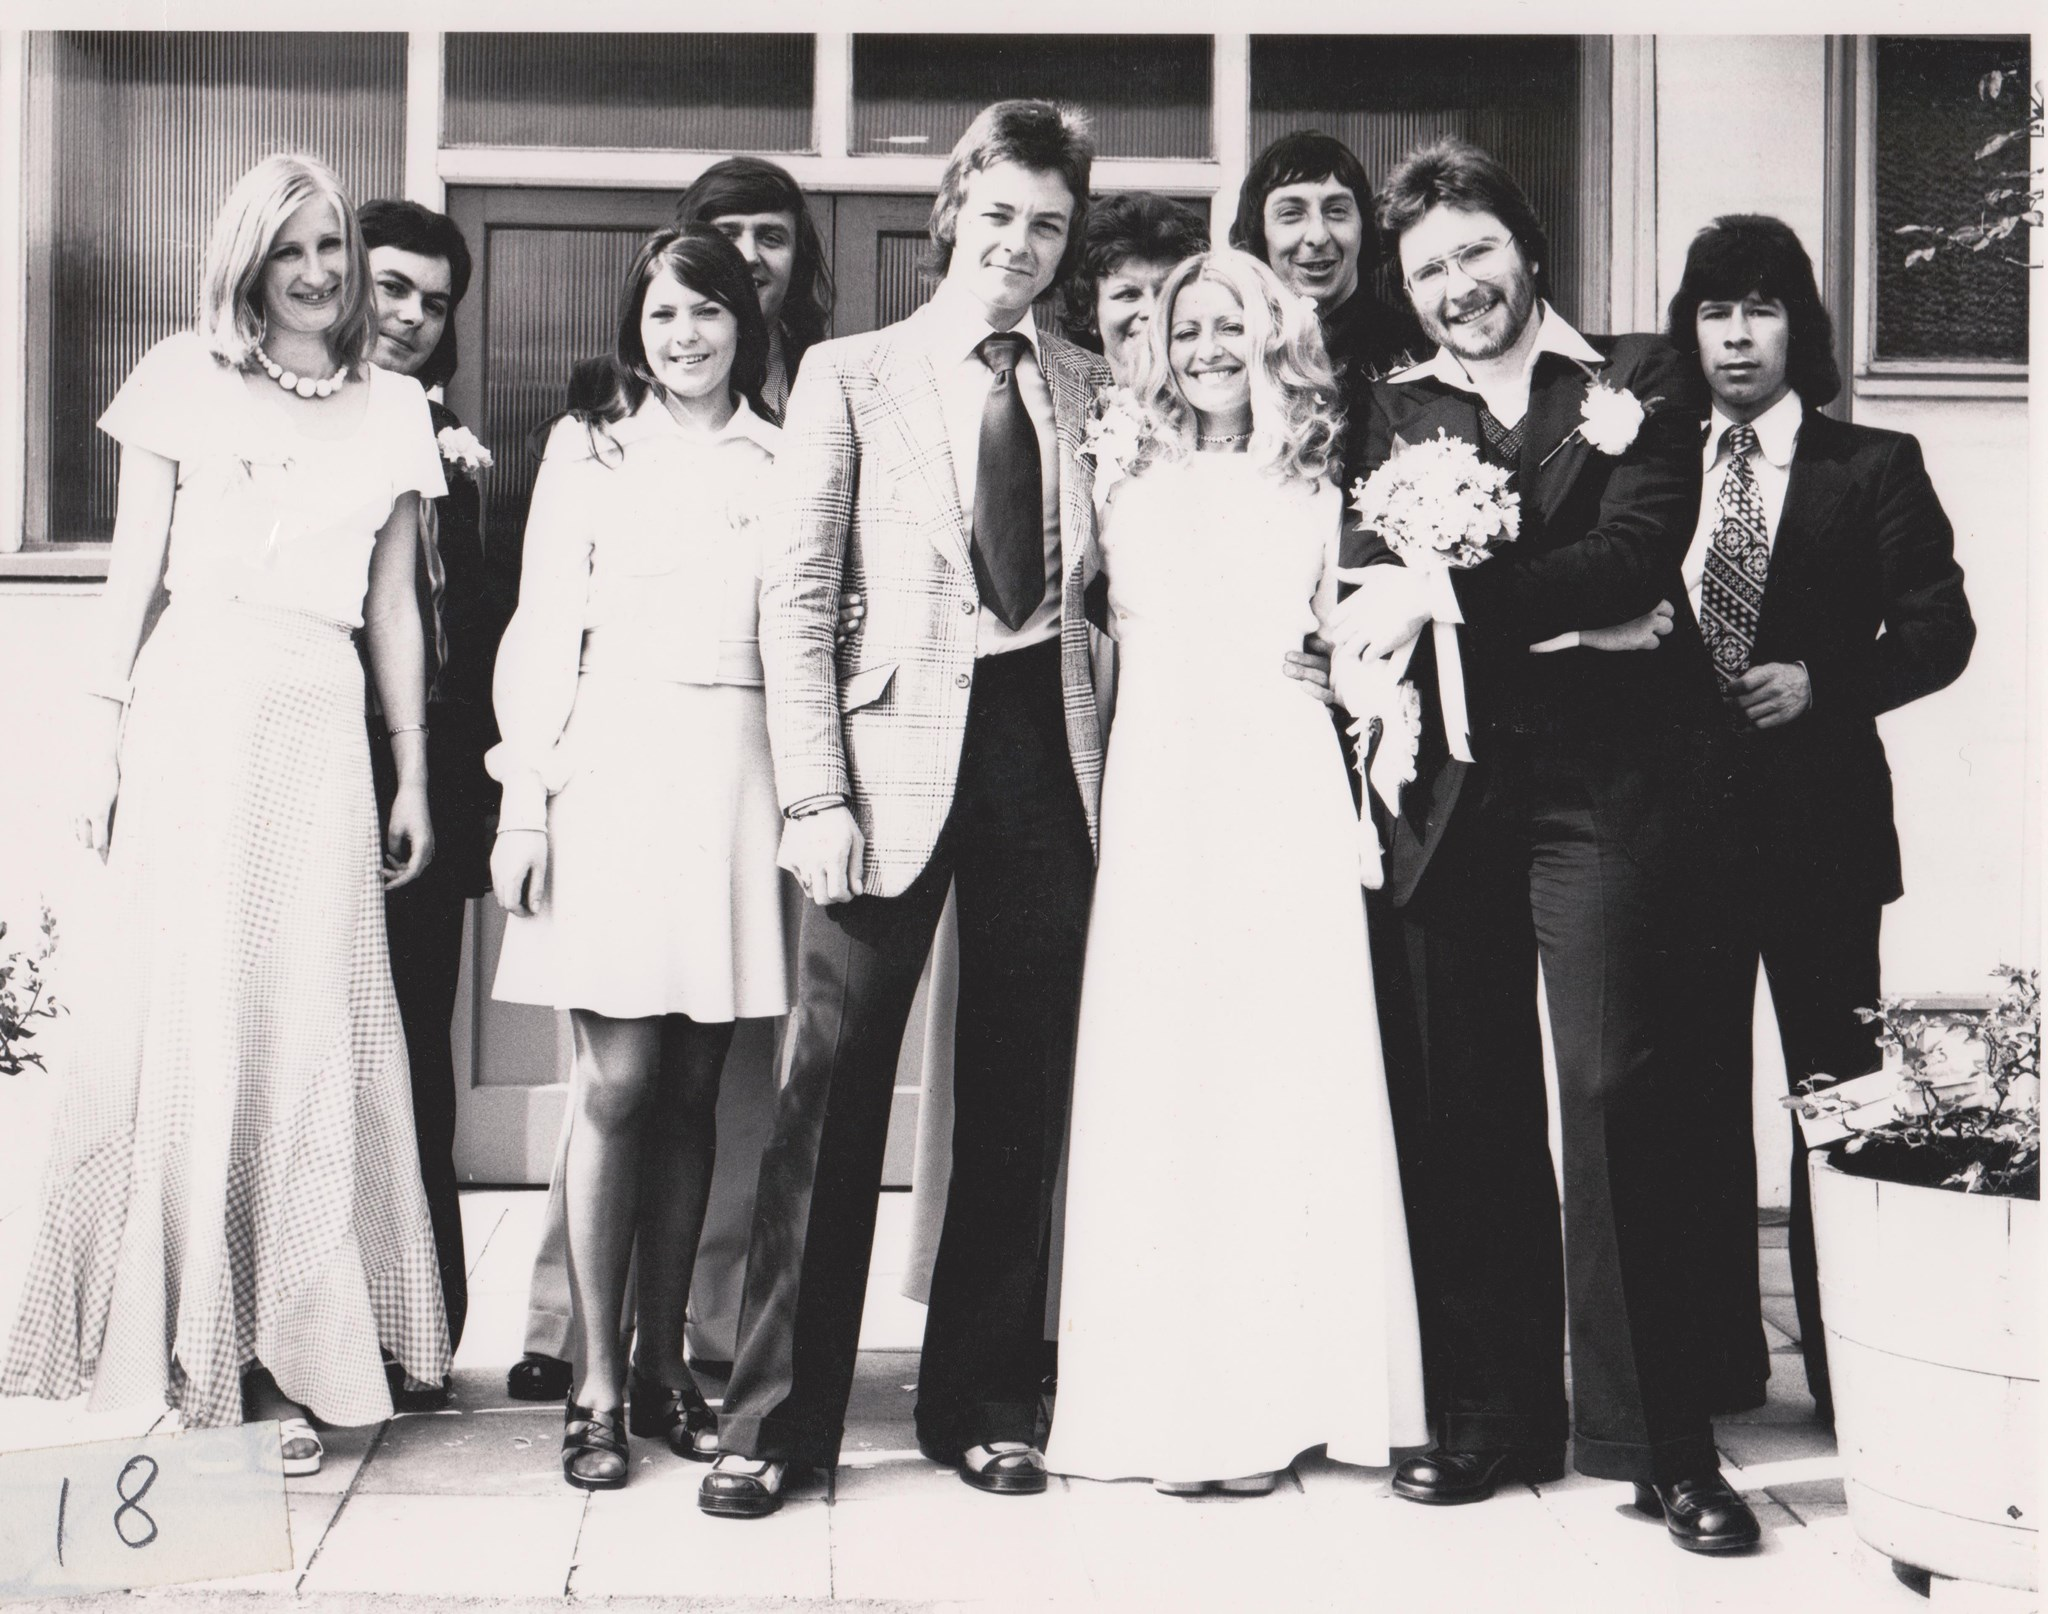 Mum & Dad's wedding with workmates from Brighton...